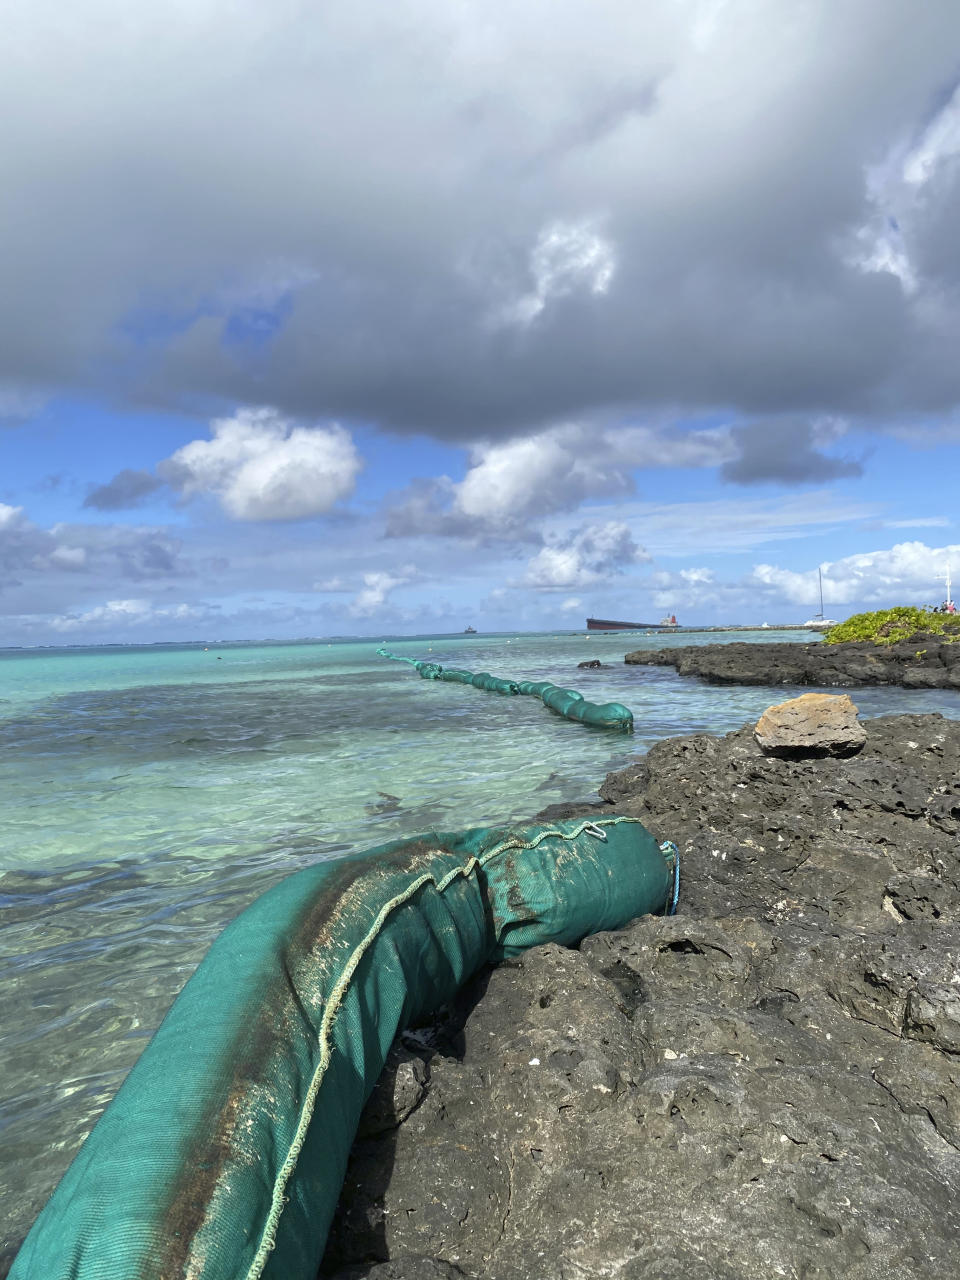 """In this photo provided by Grégoire Rouxel a ship, top right, off shore that ran aground is leaking fuel in the ocean, Friday, Aug. 7, 2020, in Mauritius. The Indian Ocean island of Mauritius has declared a """"state of environmental emergency"""" after a Japanese-owned ship that ran aground offshore days ago began spilling tons of fuel. Prime Minister Pravind Jugnauth announced the development late Friday, Aug. 7, as satellite images showed a dark slick spreading near environmental areas the government called """"very sensitive."""" (@gregrouxel via AP)"""